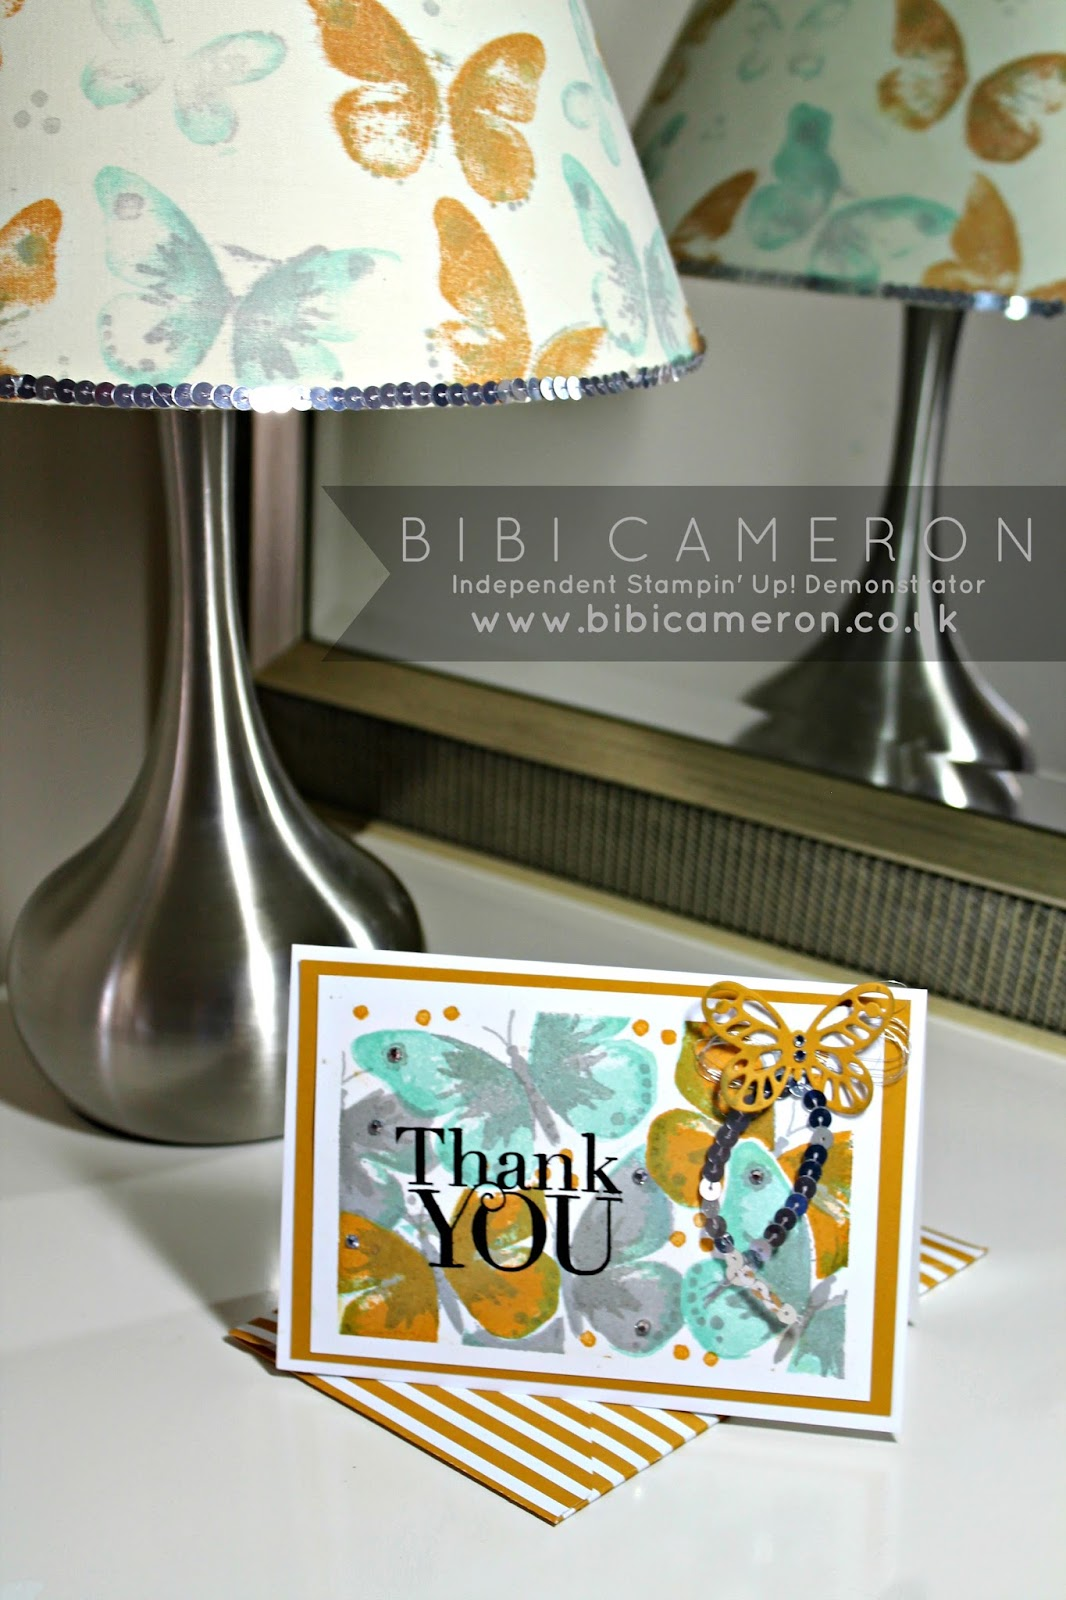 Watercolour wings easy card background + Lampshade Stampin' Up! #tgifc15